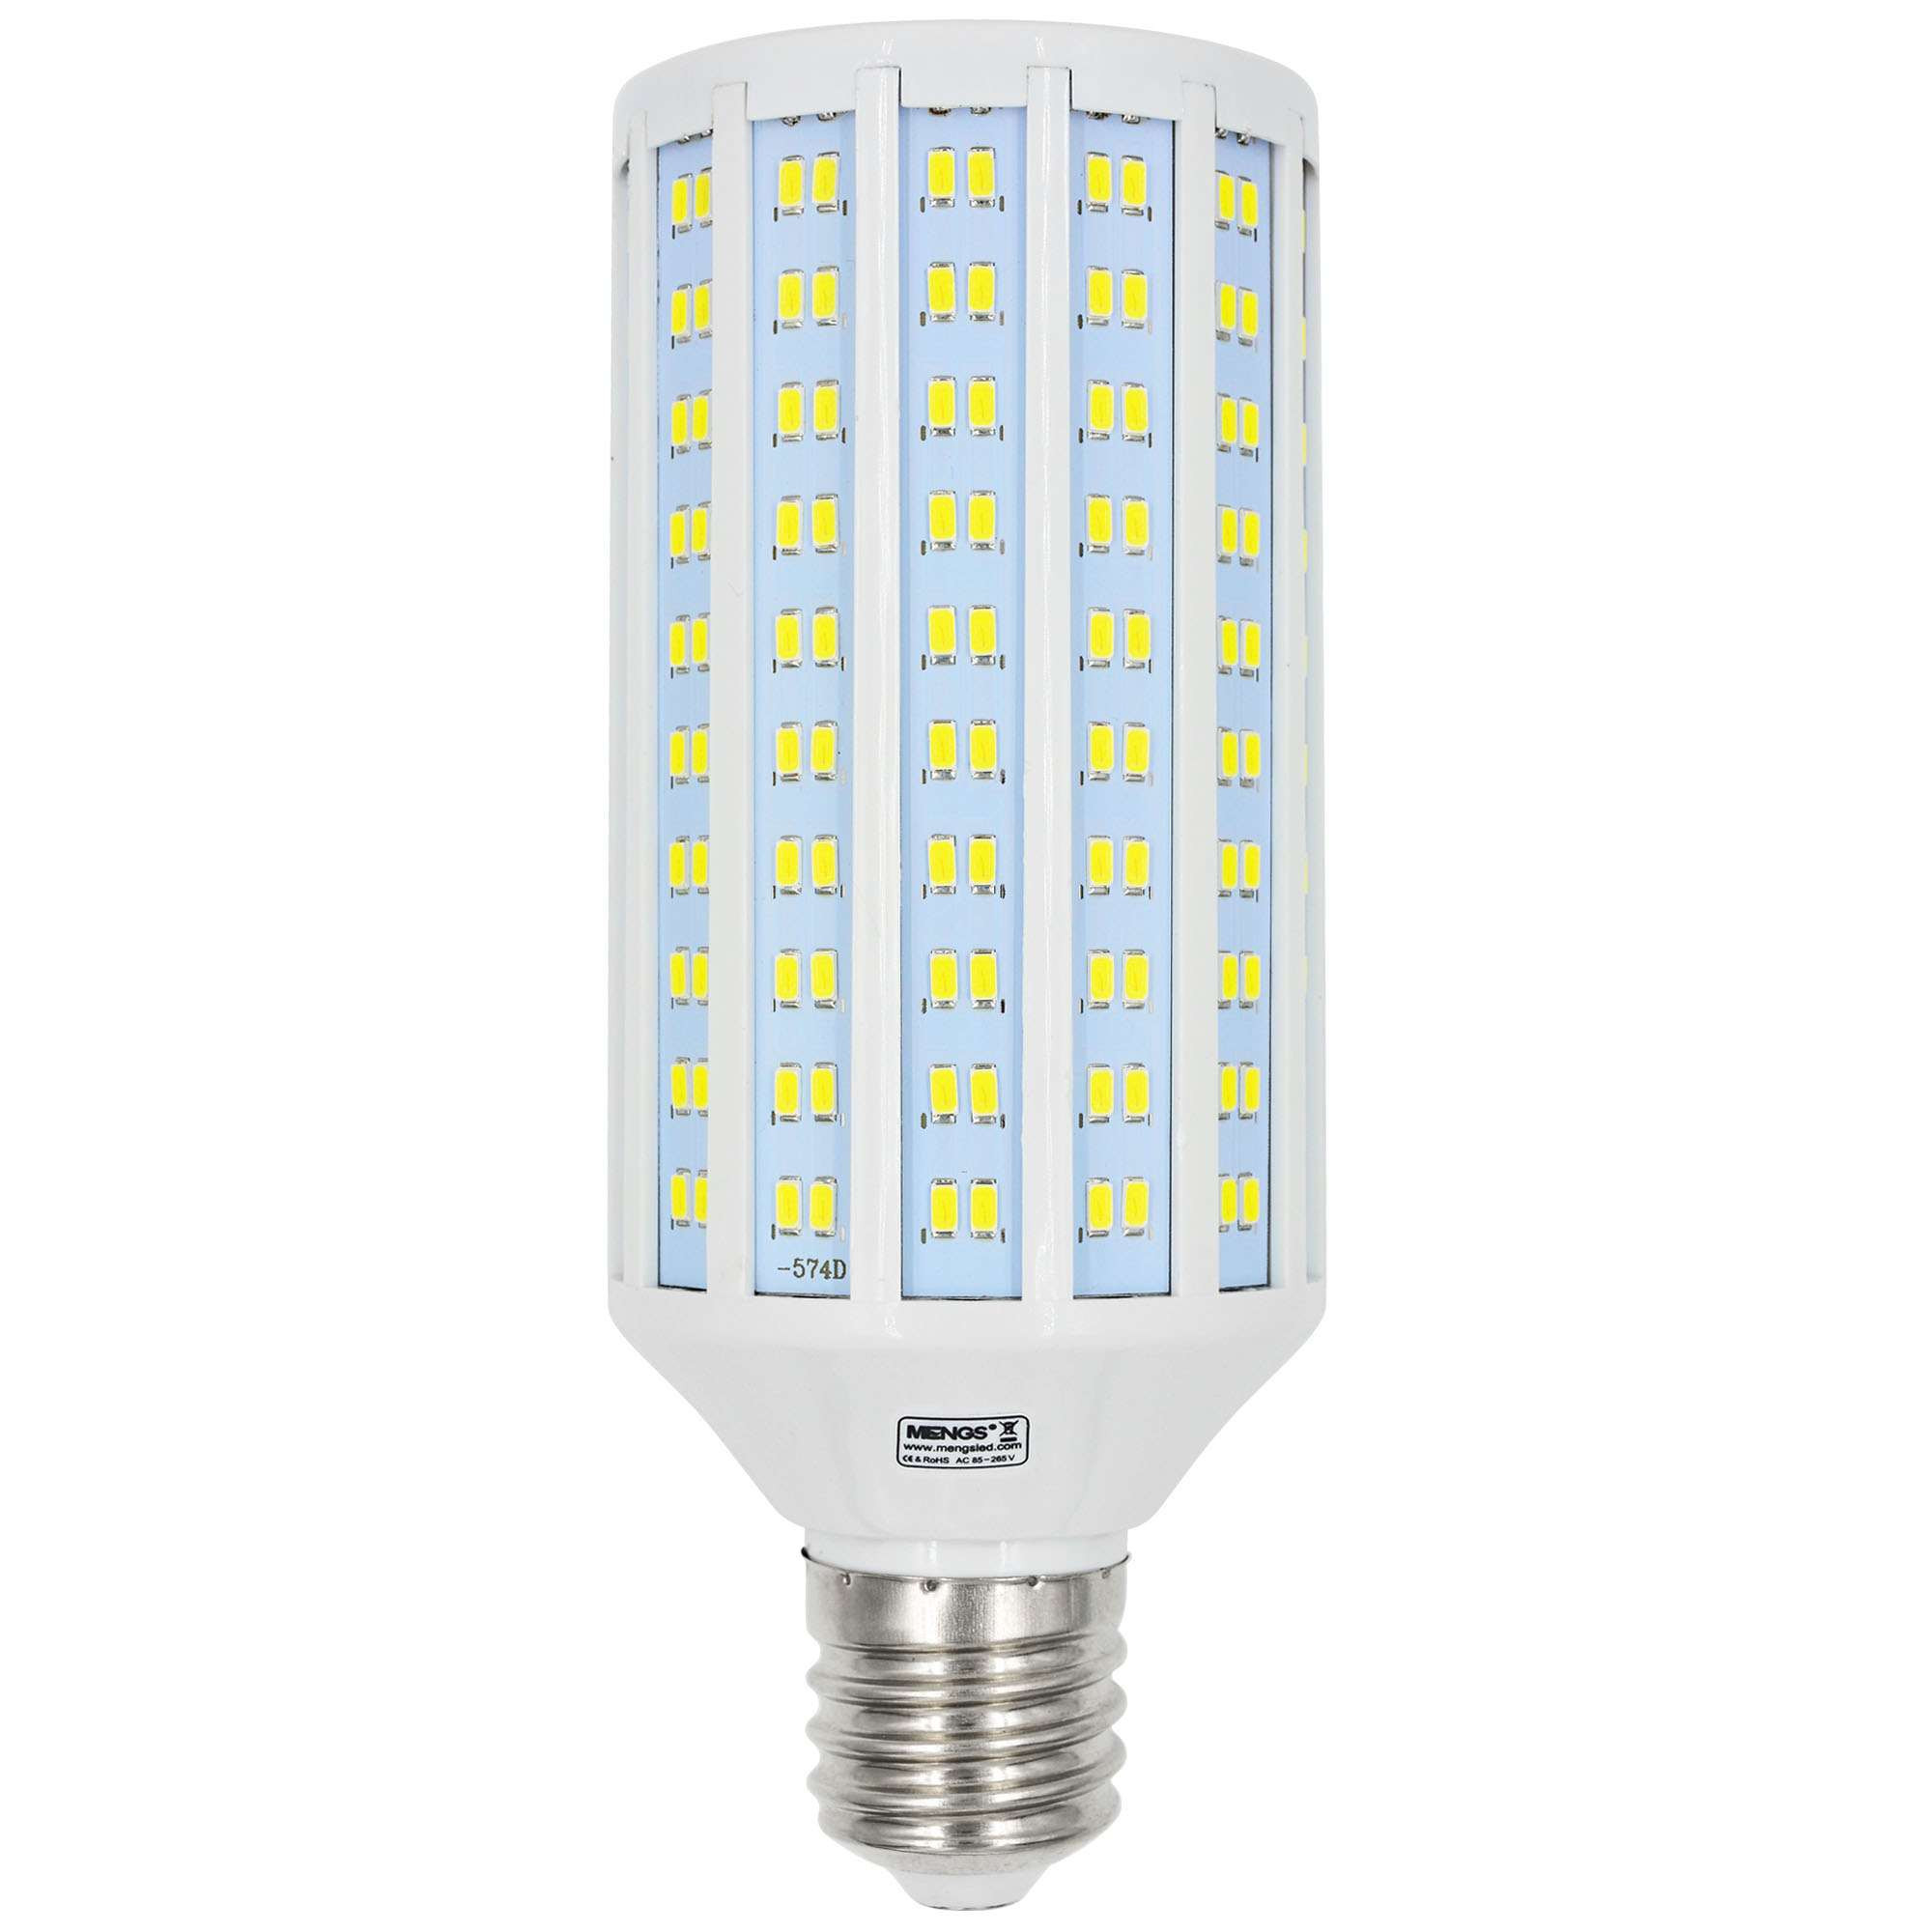 MENGS® E40 50W LED Corn Light 310x 5730 SMD LED Bulb Lamp AC 85-265V In Cool White Energy-Saving Light